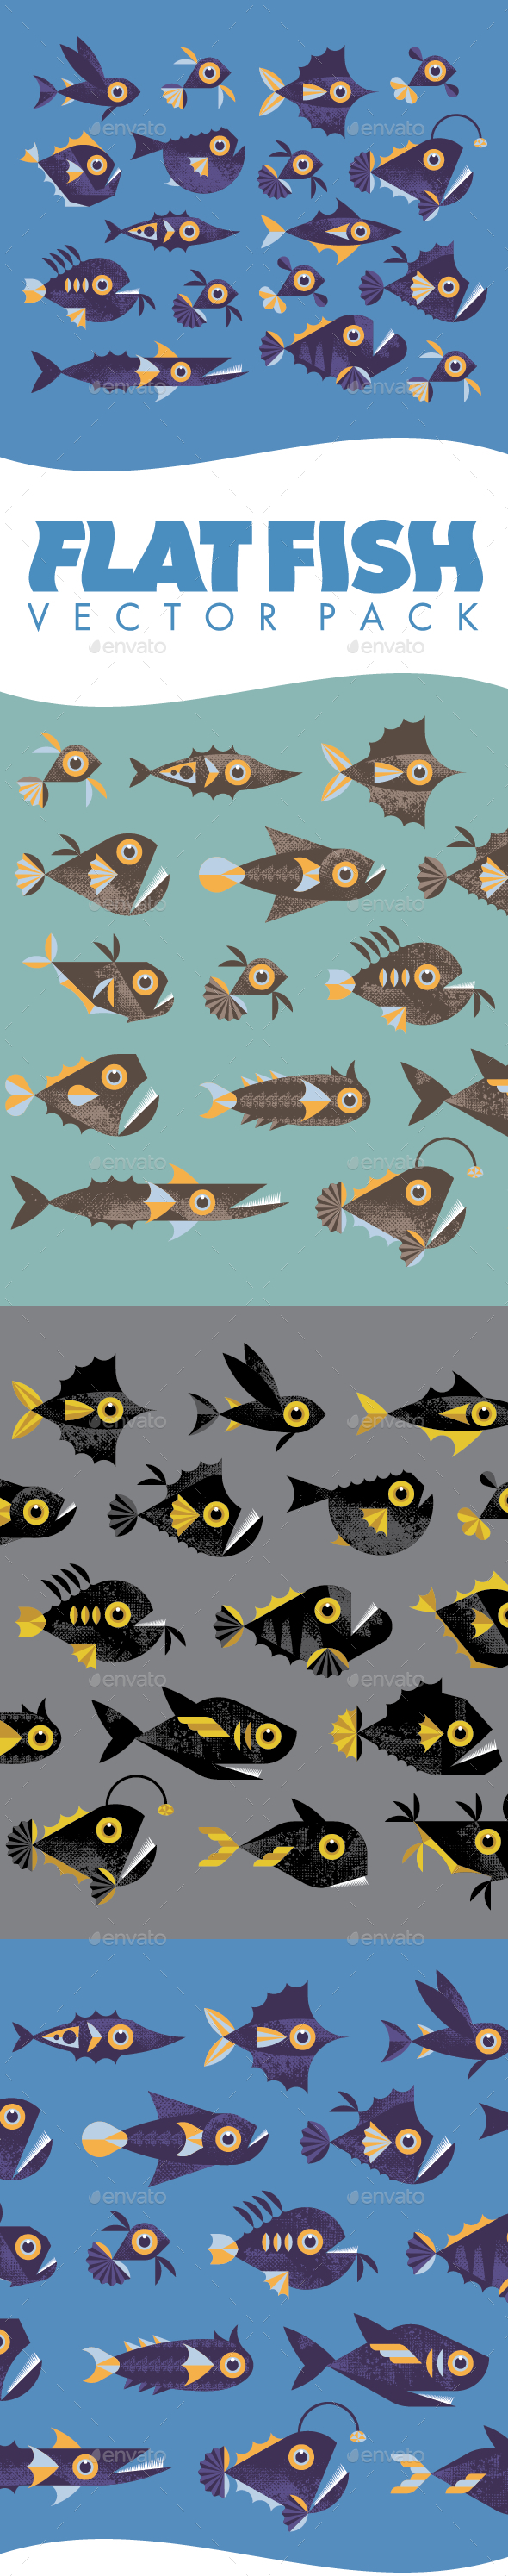 GraphicRiver Flat Fish Vector Pack 8882981